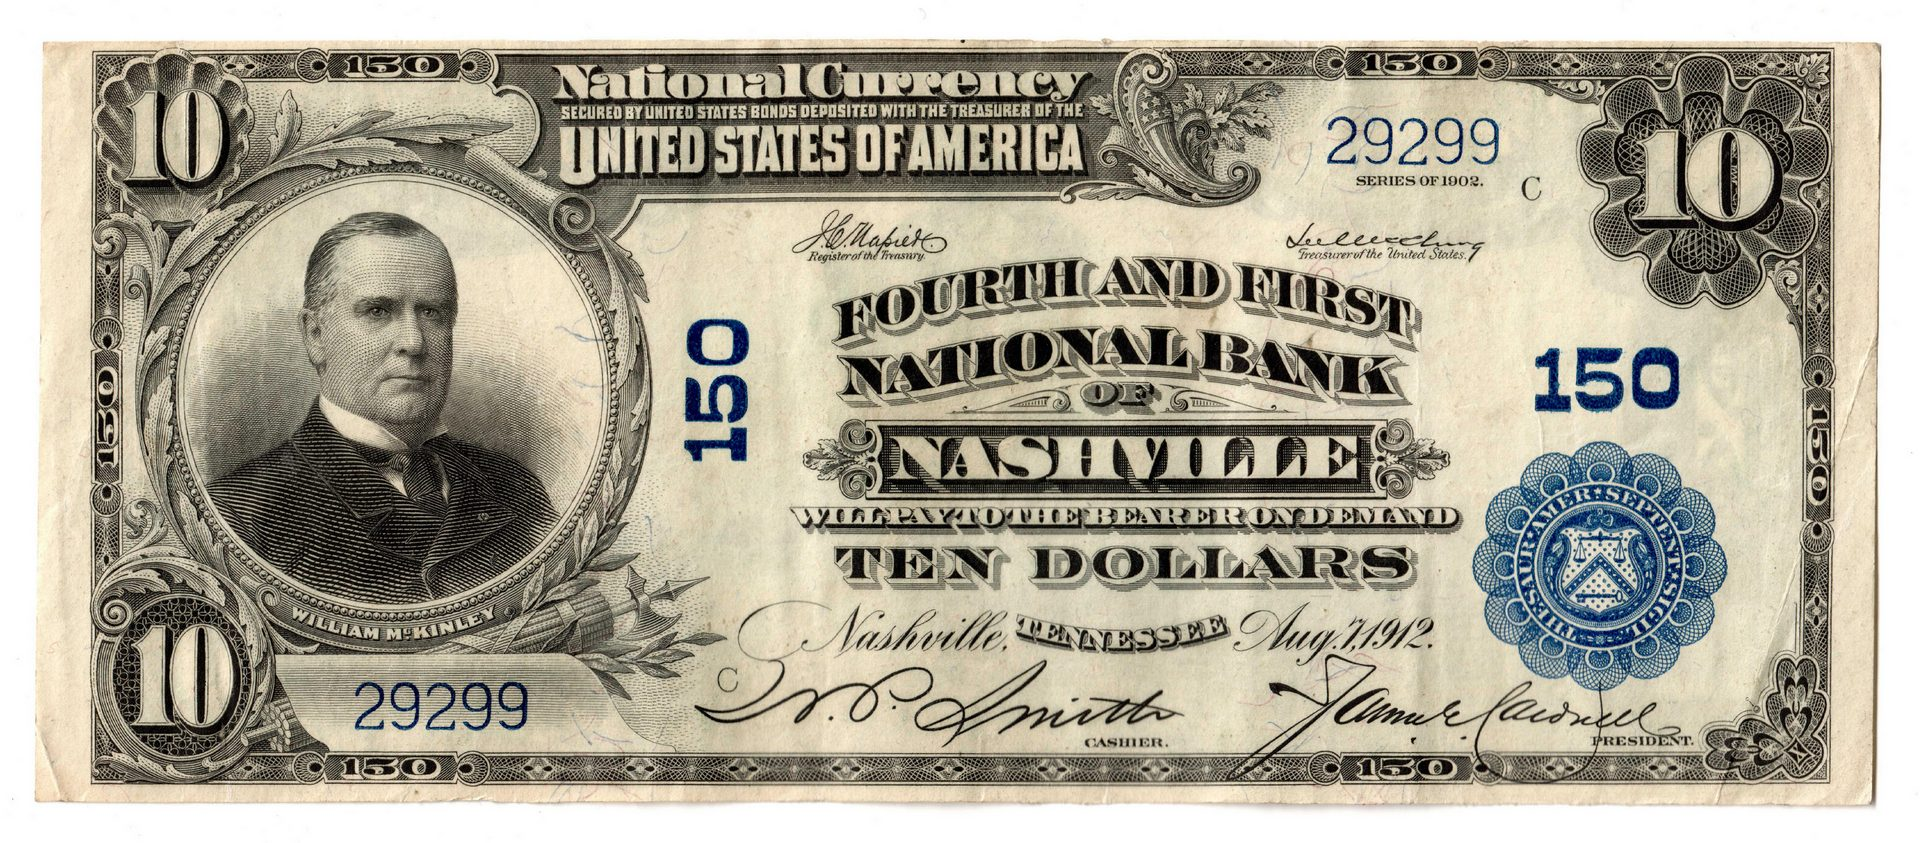 Lot 68: 1902 $10 Fourth and First National Bank, Nashville